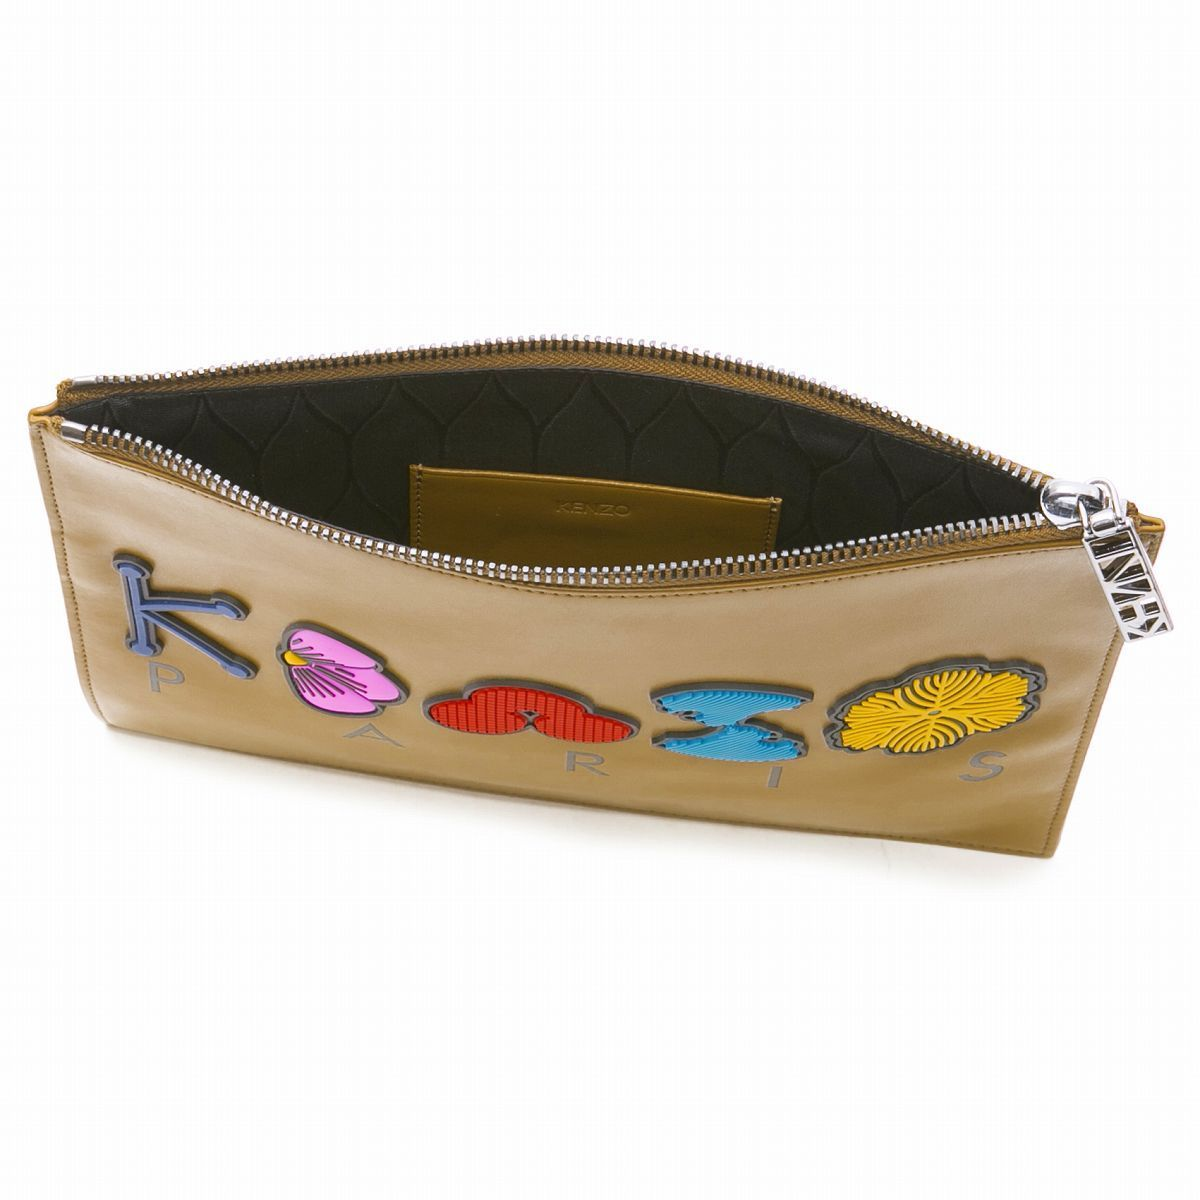 KENZO クラッチバッグ W'S POUCH YELLOW  2SA607L21 ケンゾー